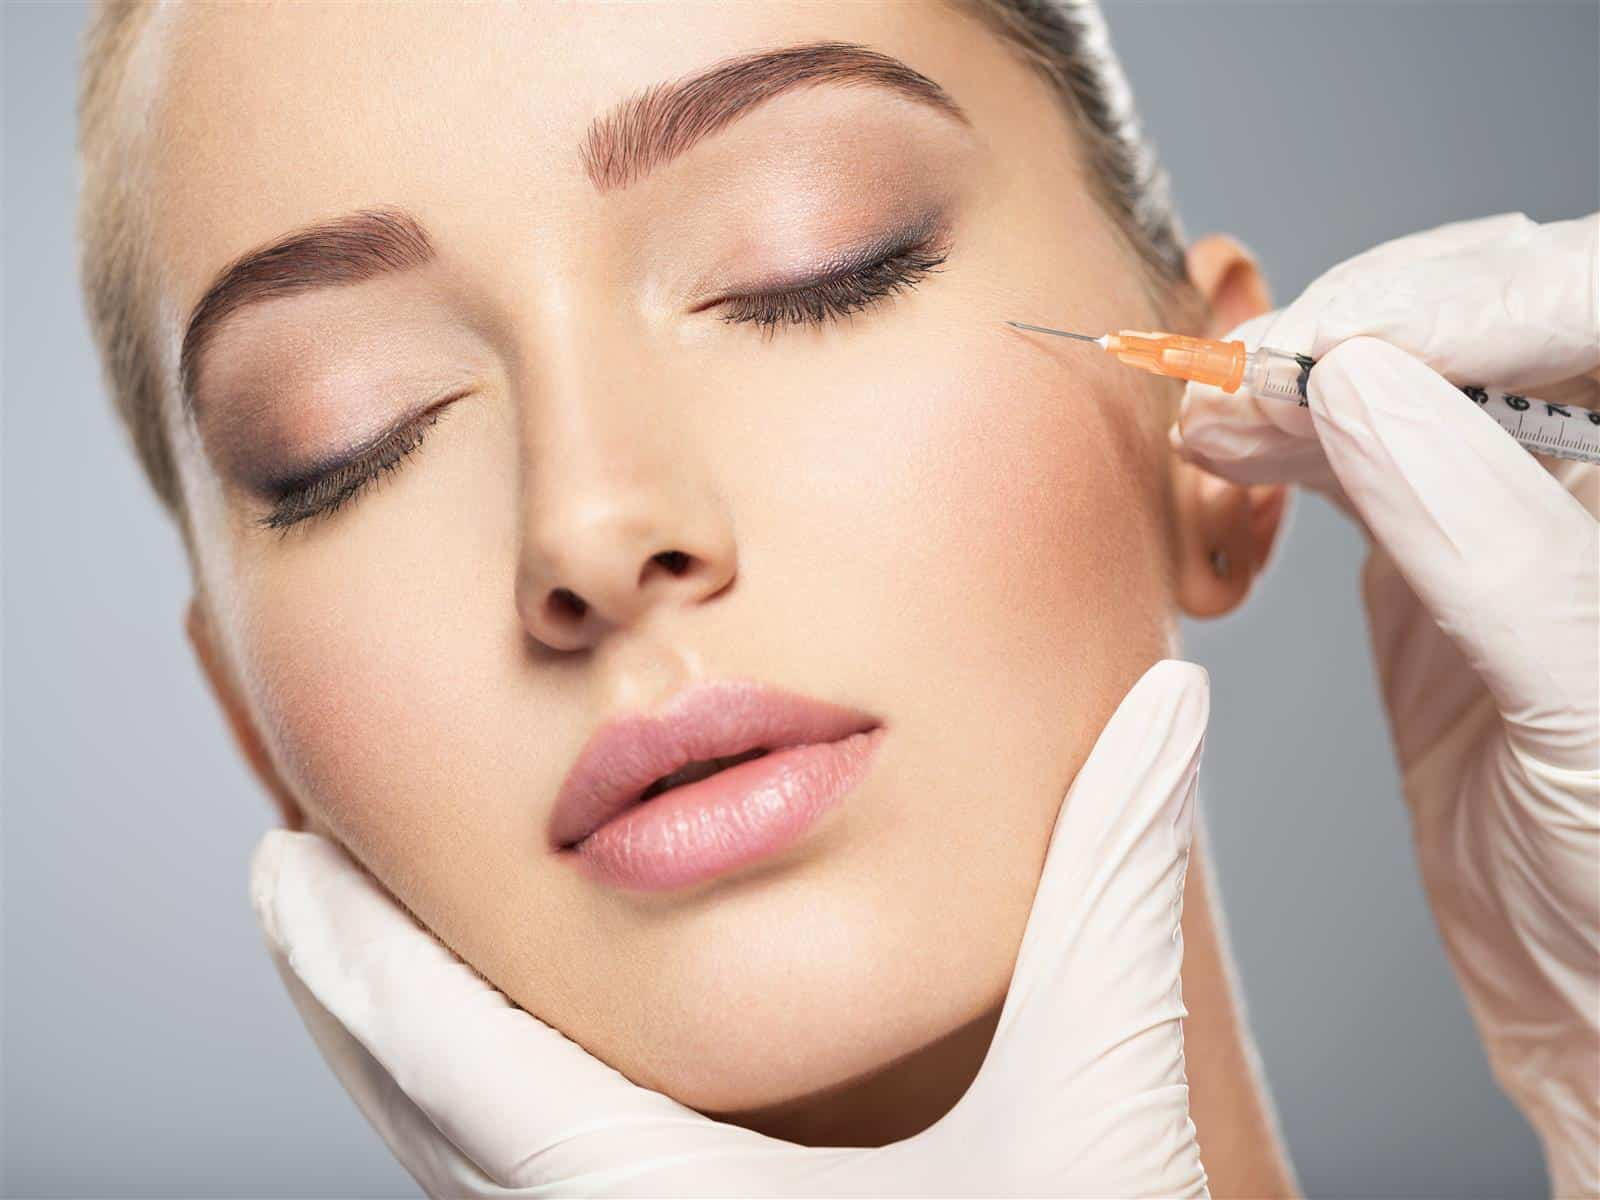 Read more about the article ΣΕ ΤΙ ΗΛΙΚΙΑ ΕΙΝΑΙ ΣΩΣΤΟ ΝΑ ΚΑΝΩ BOTOX